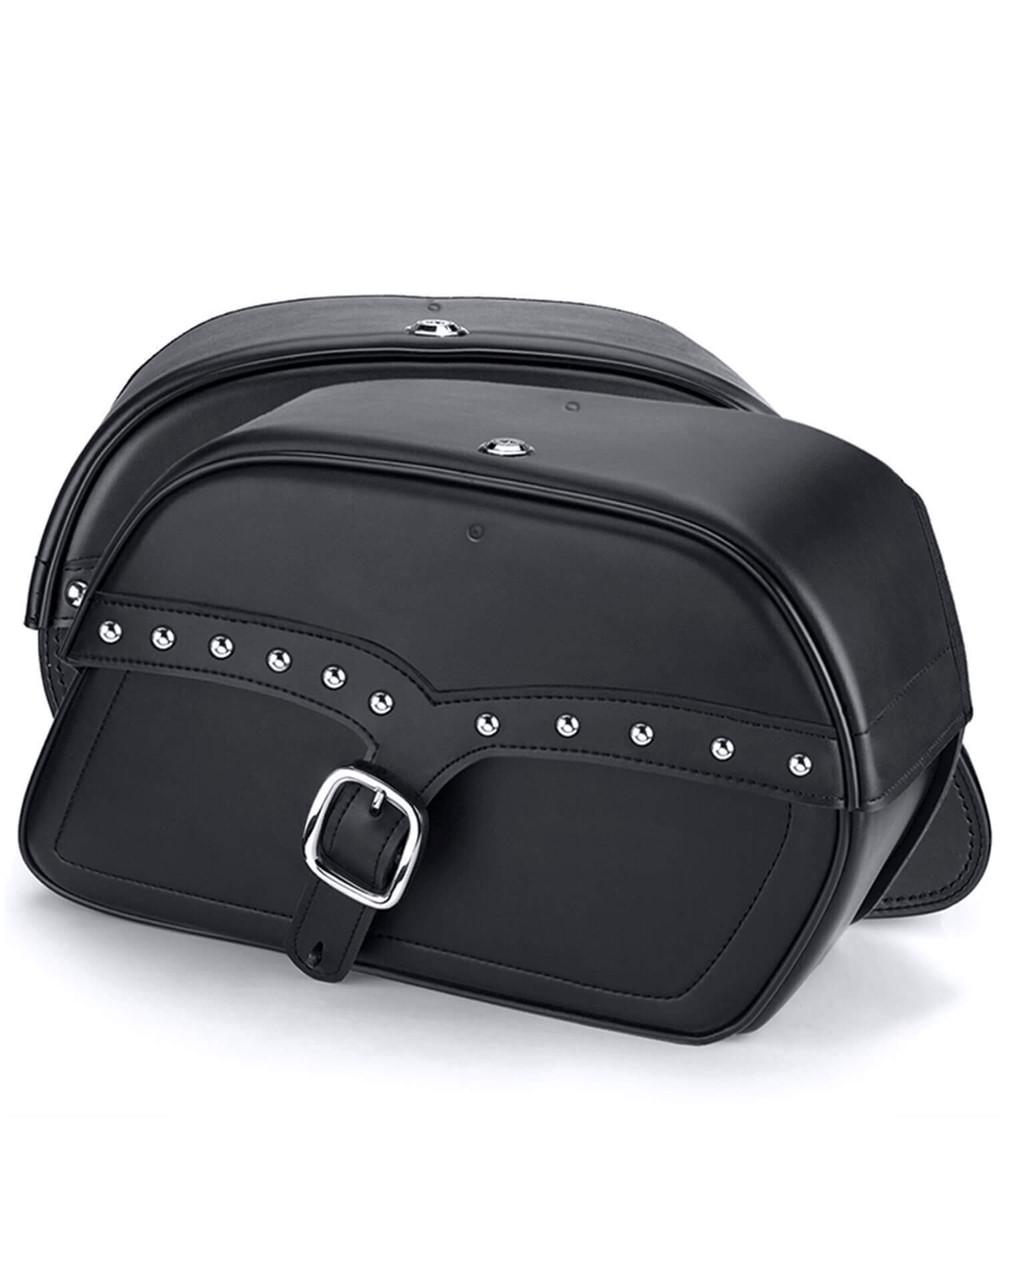 Victory Vegas Medium Charger Single Strap Studded Motorcycle Saddlebags Both bags View